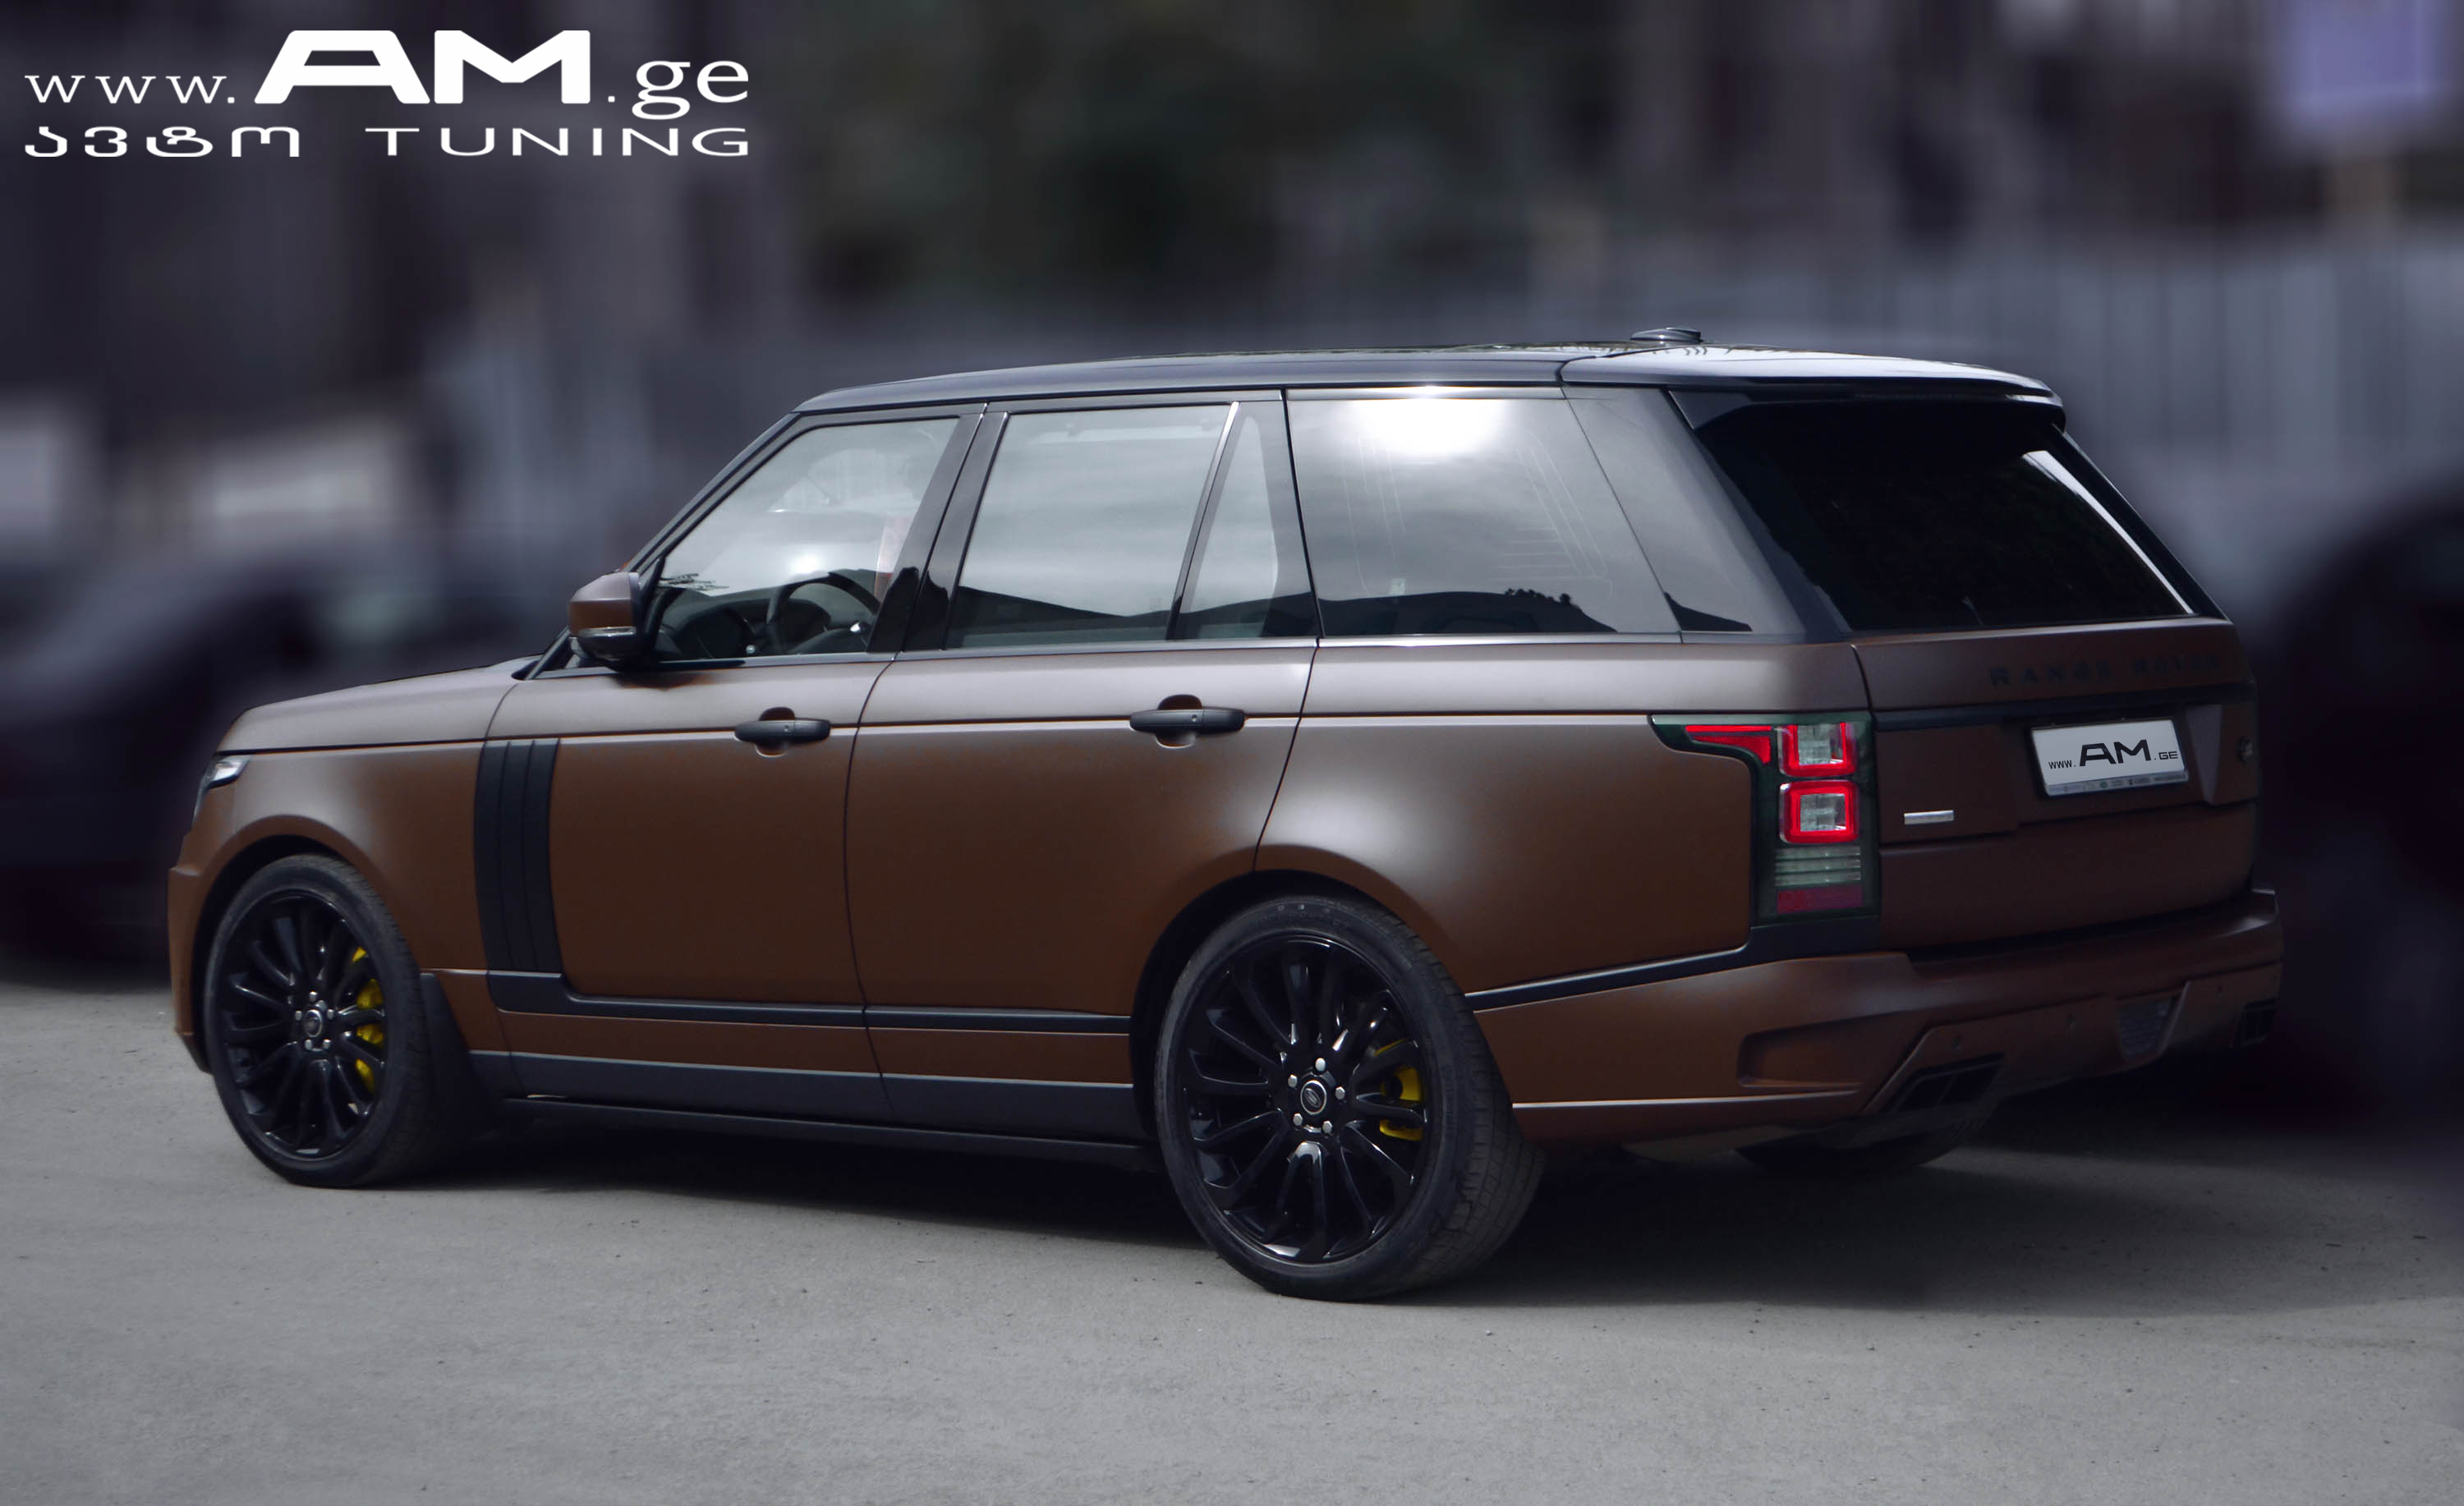 Range Rover Brown Matte Car Wrapping Auto Am Ge